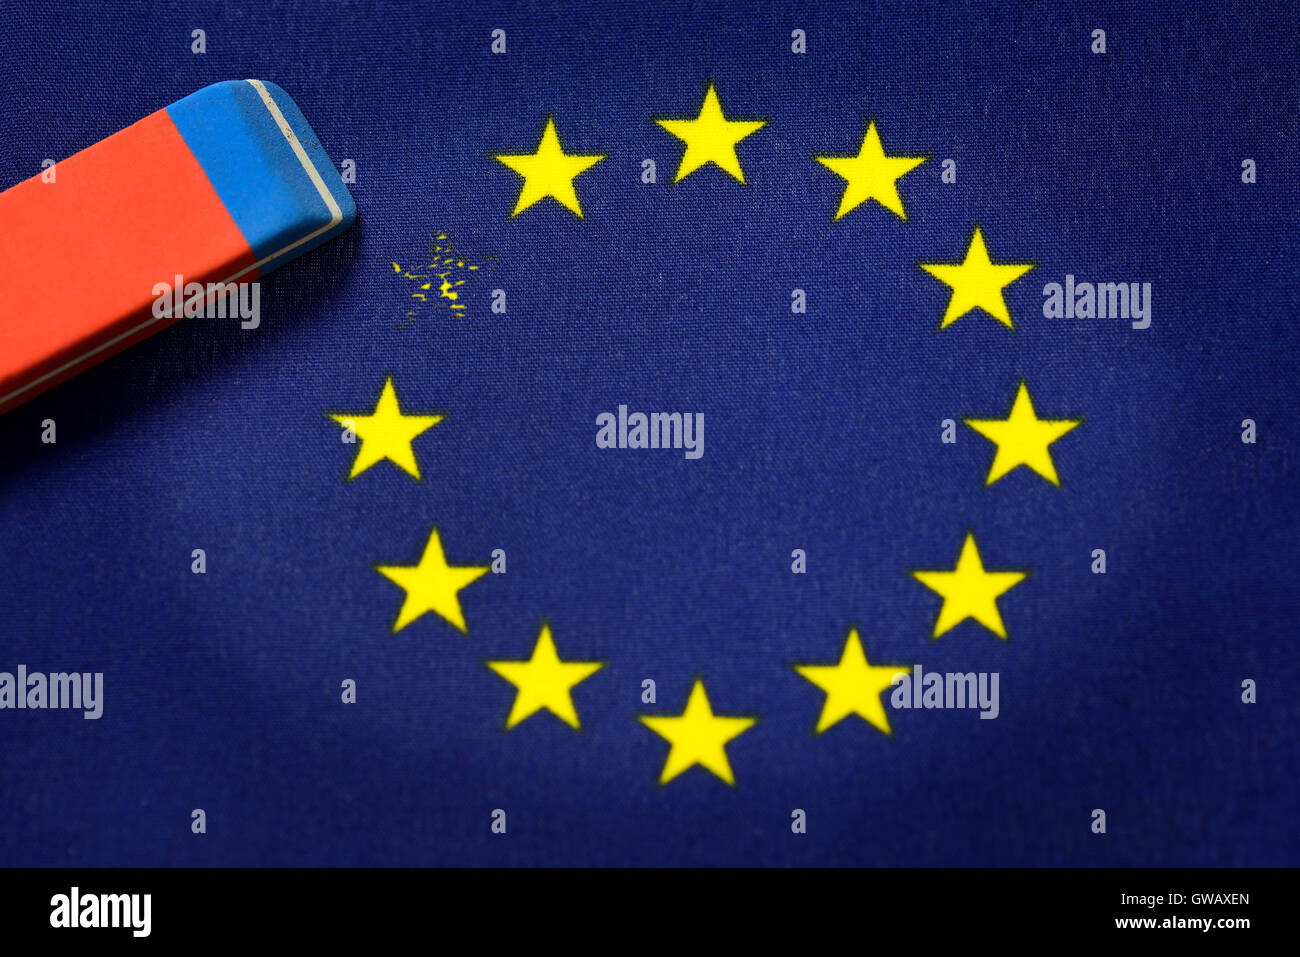 From EU flag star is erased out, symbolic photo Brexit, Aus EU-Fahne wird Stern ausradiert, Symbolfoto Brexit Stock Photo